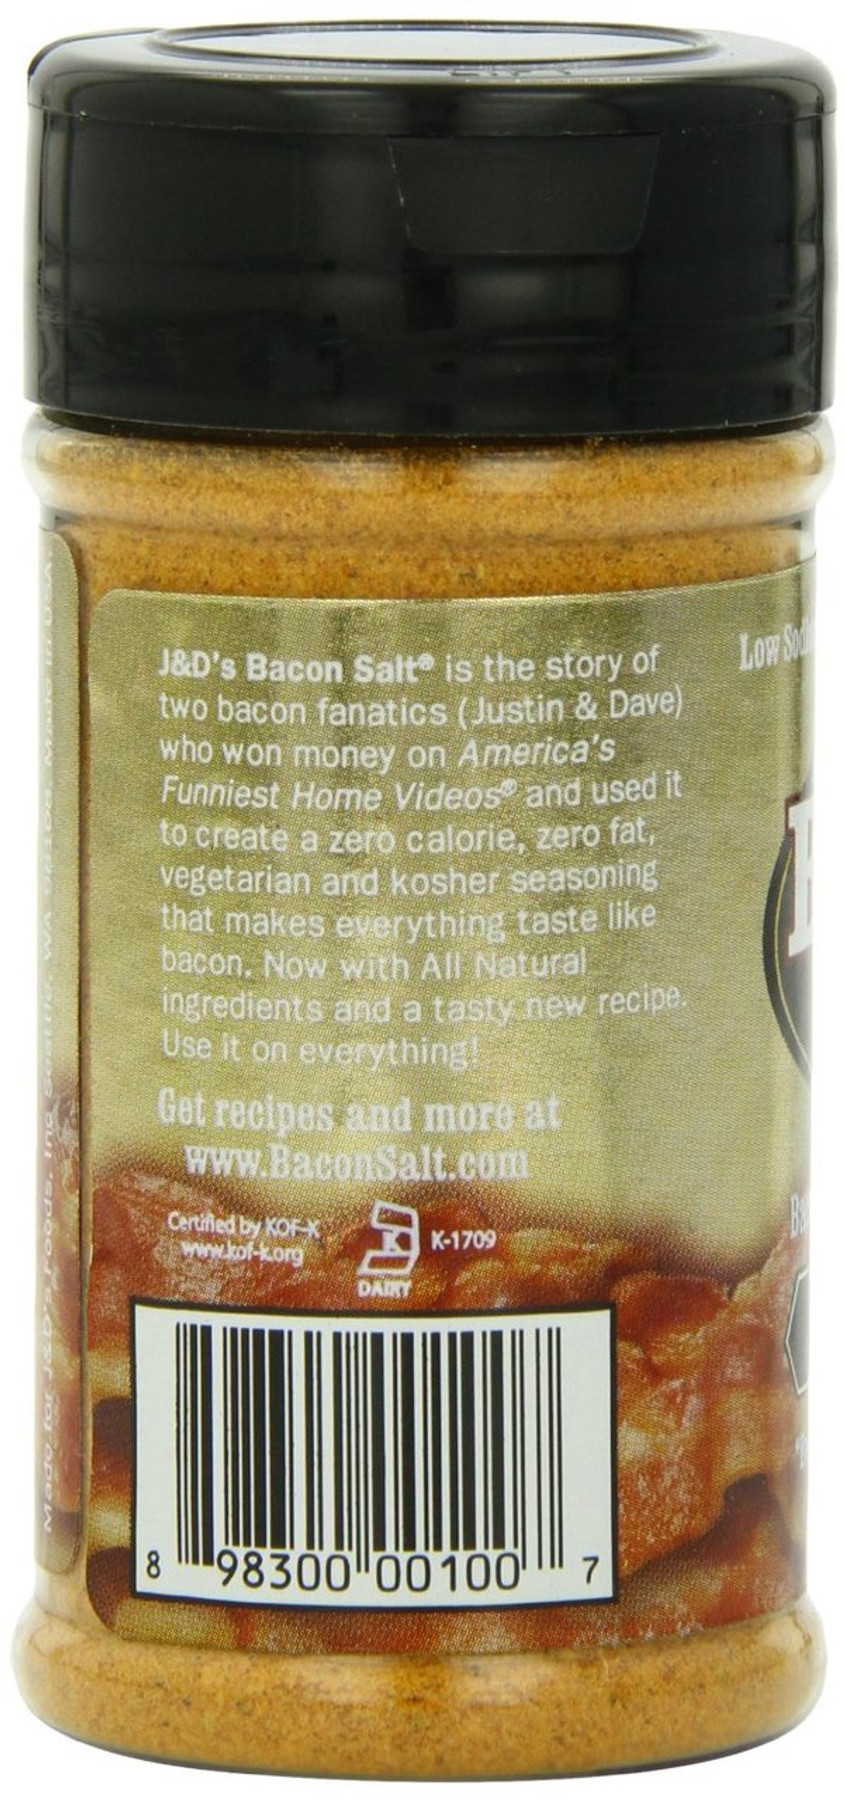 J&D's Bacon Salt, Original